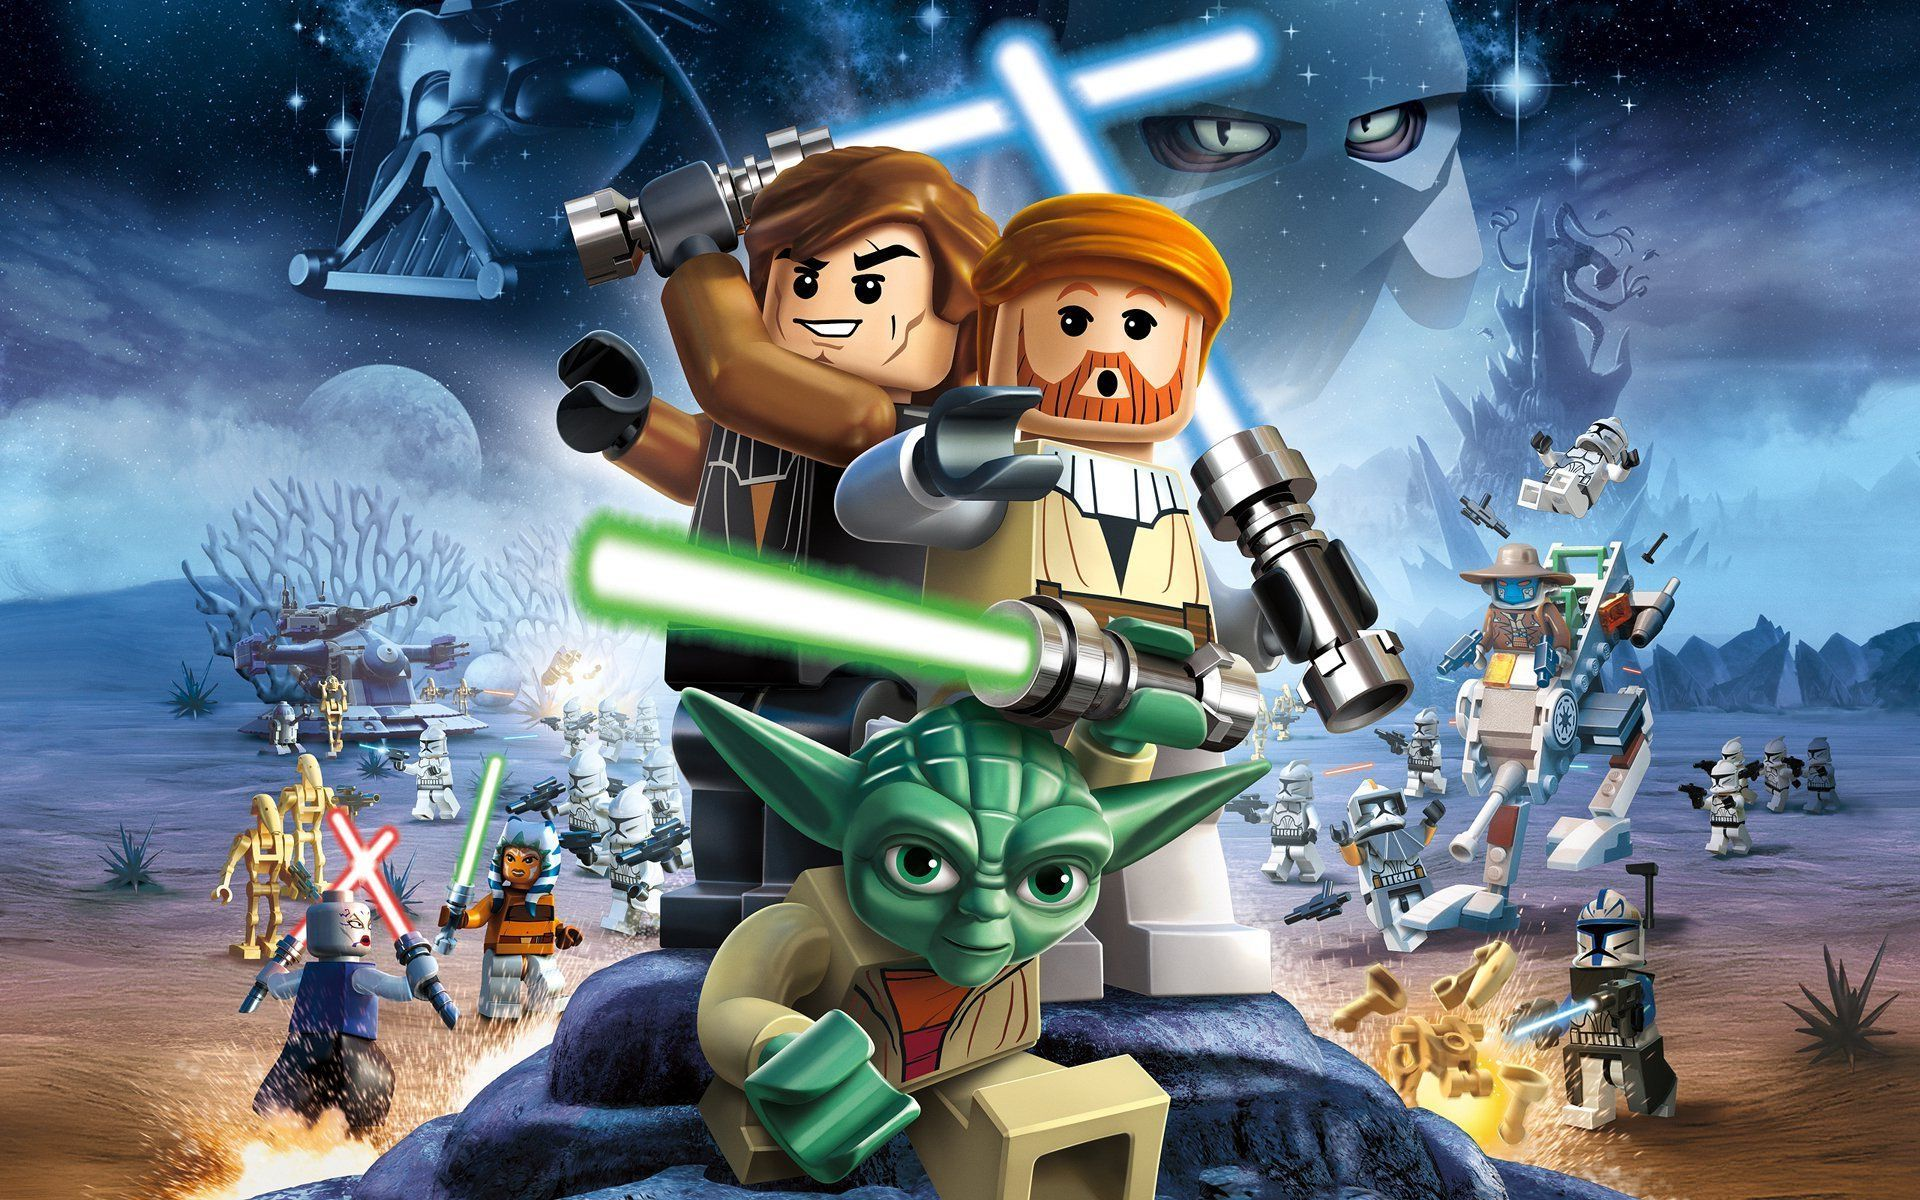 Lego Star Wars Wallpaper - Star Wars Lego Imagenes , HD Wallpaper & Backgrounds